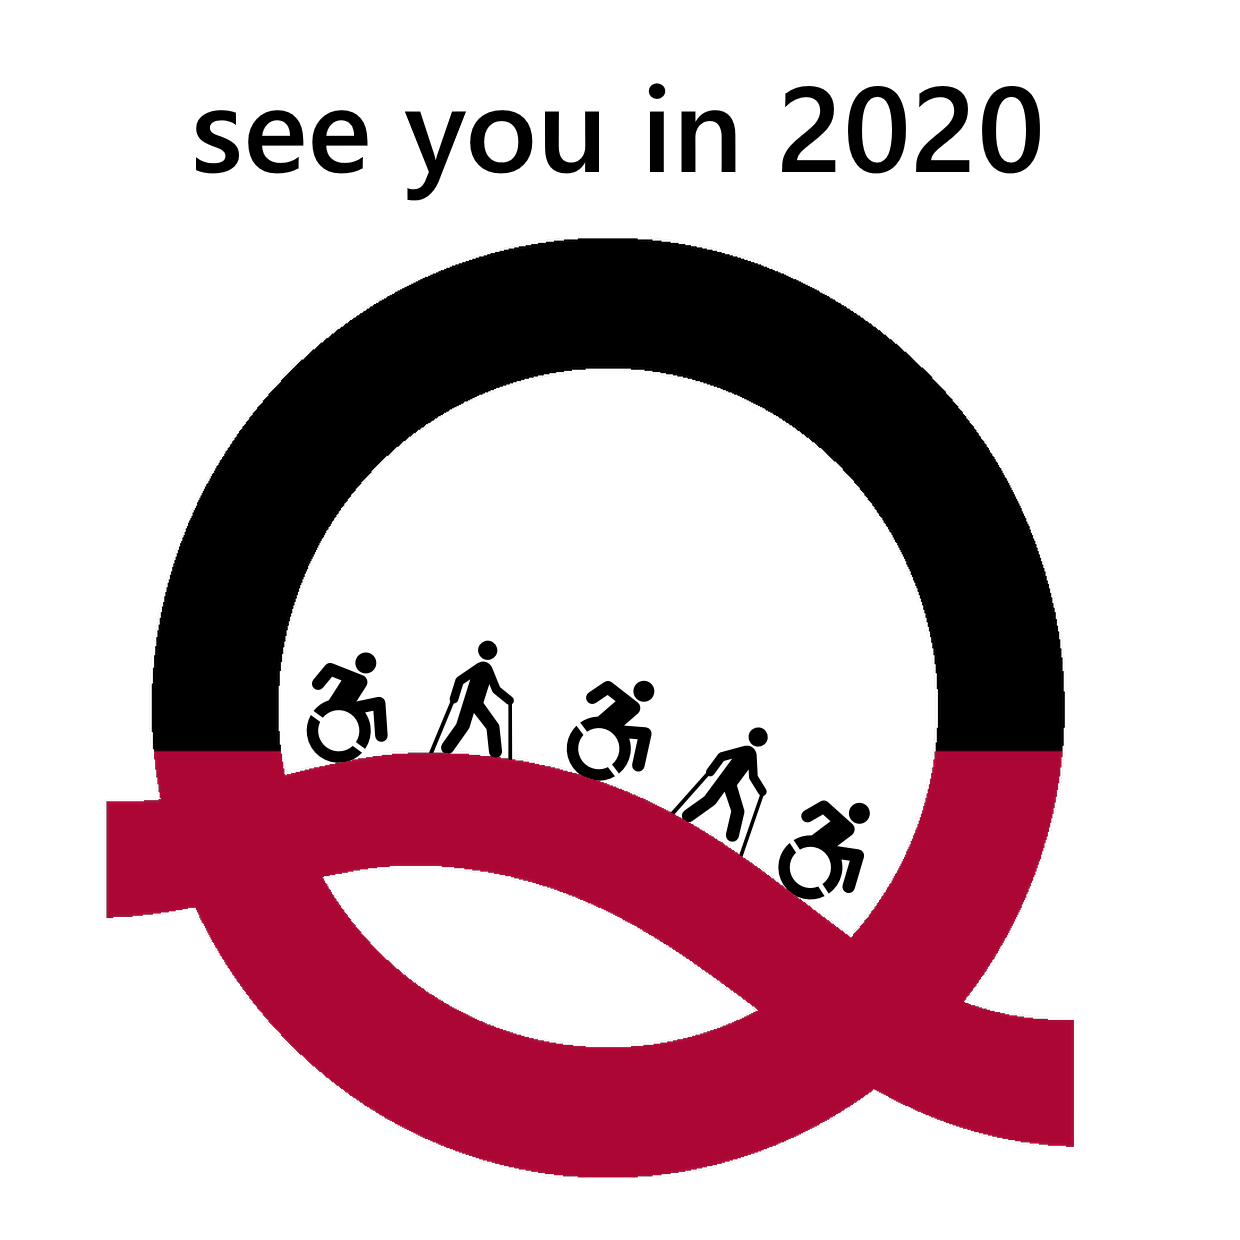 See you in 2020 als Logo